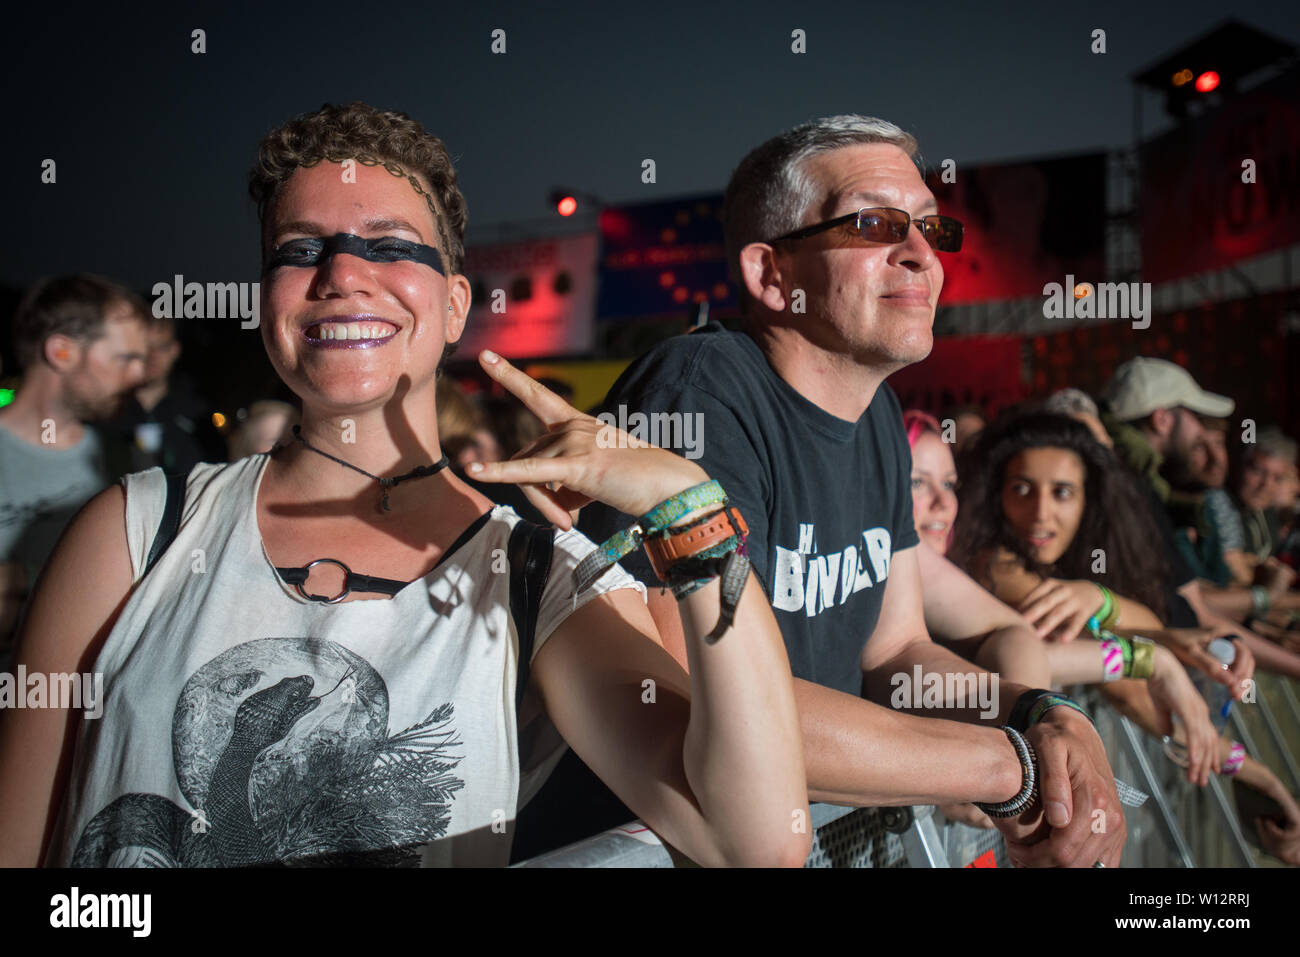 Glastonbury, Pilton, Somerset, UK. 28th June 2019. Fans wait for Gojira to start thier set at Truth stage,  Shangri-La during Glastonbury Festival on Friday 28th June 2019. Credit: Female Perspective/Alamy Live News - Stock Image